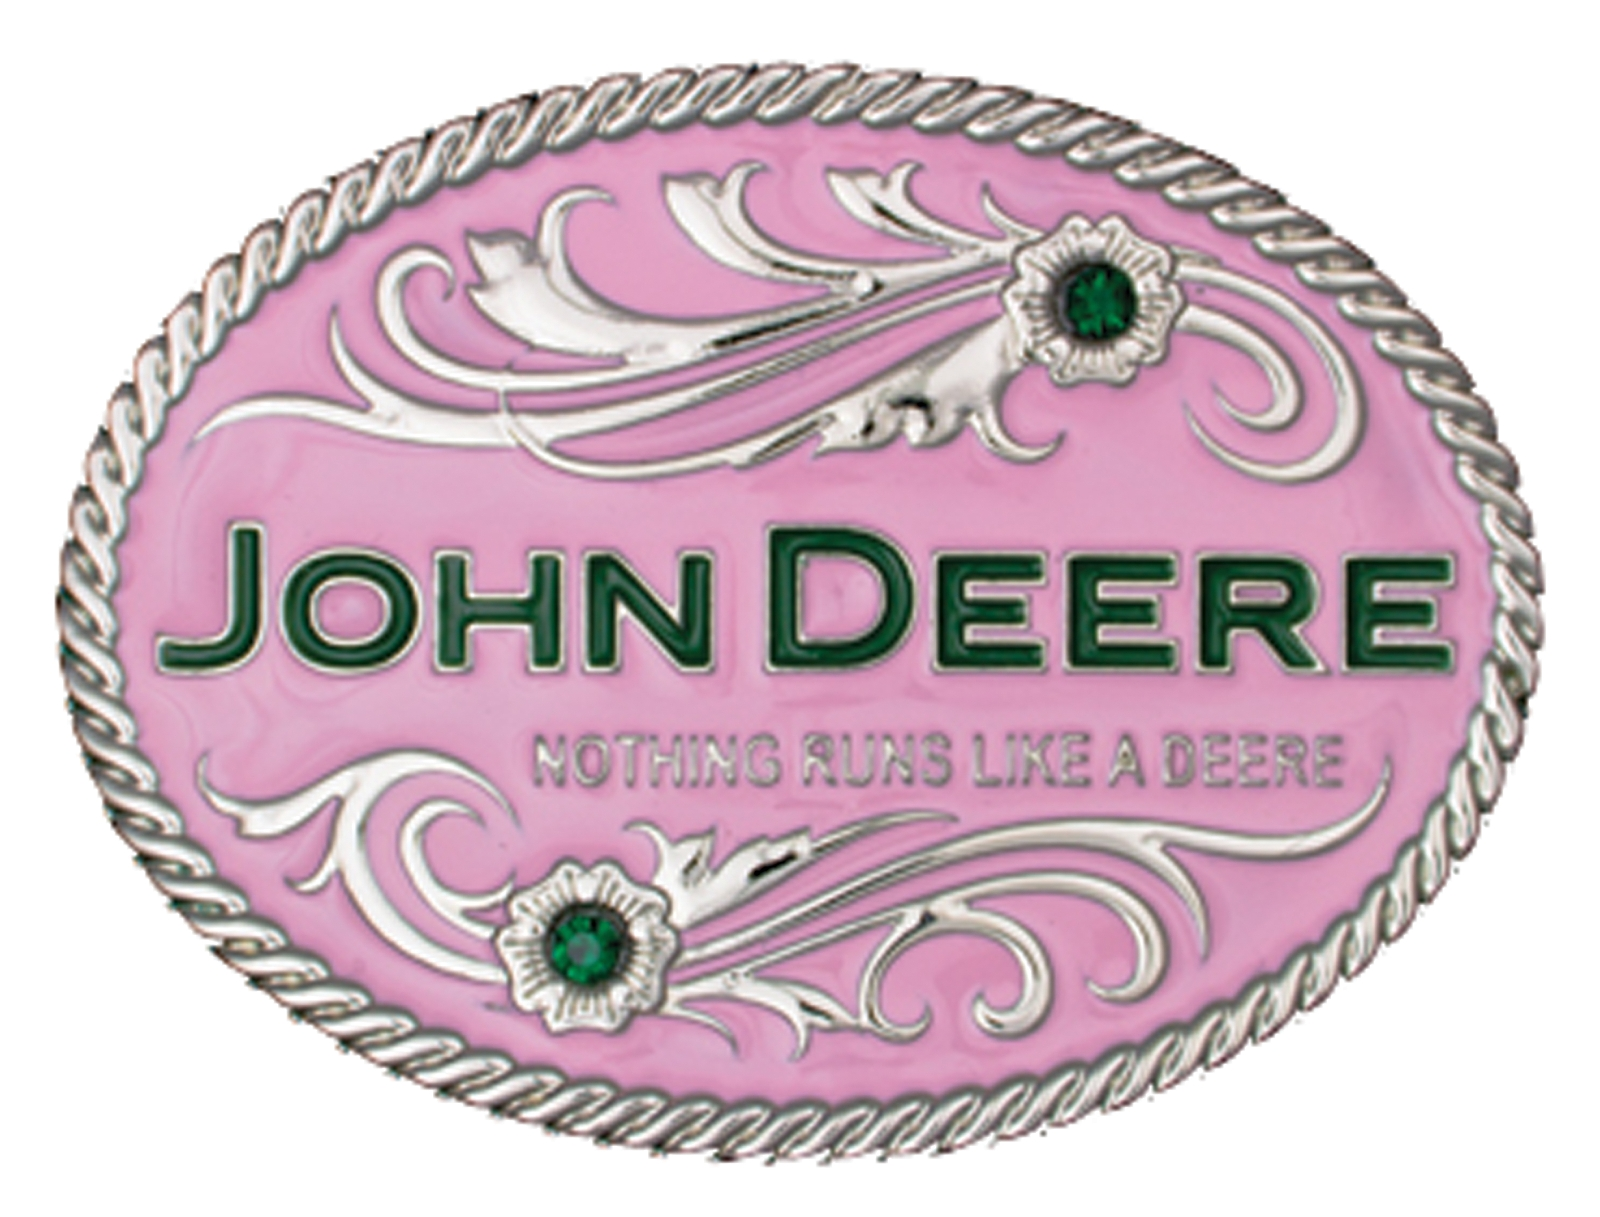 Montana Silversmiths Nothing Runs LikeofDeere Pink with Flowers Attitude Buckle